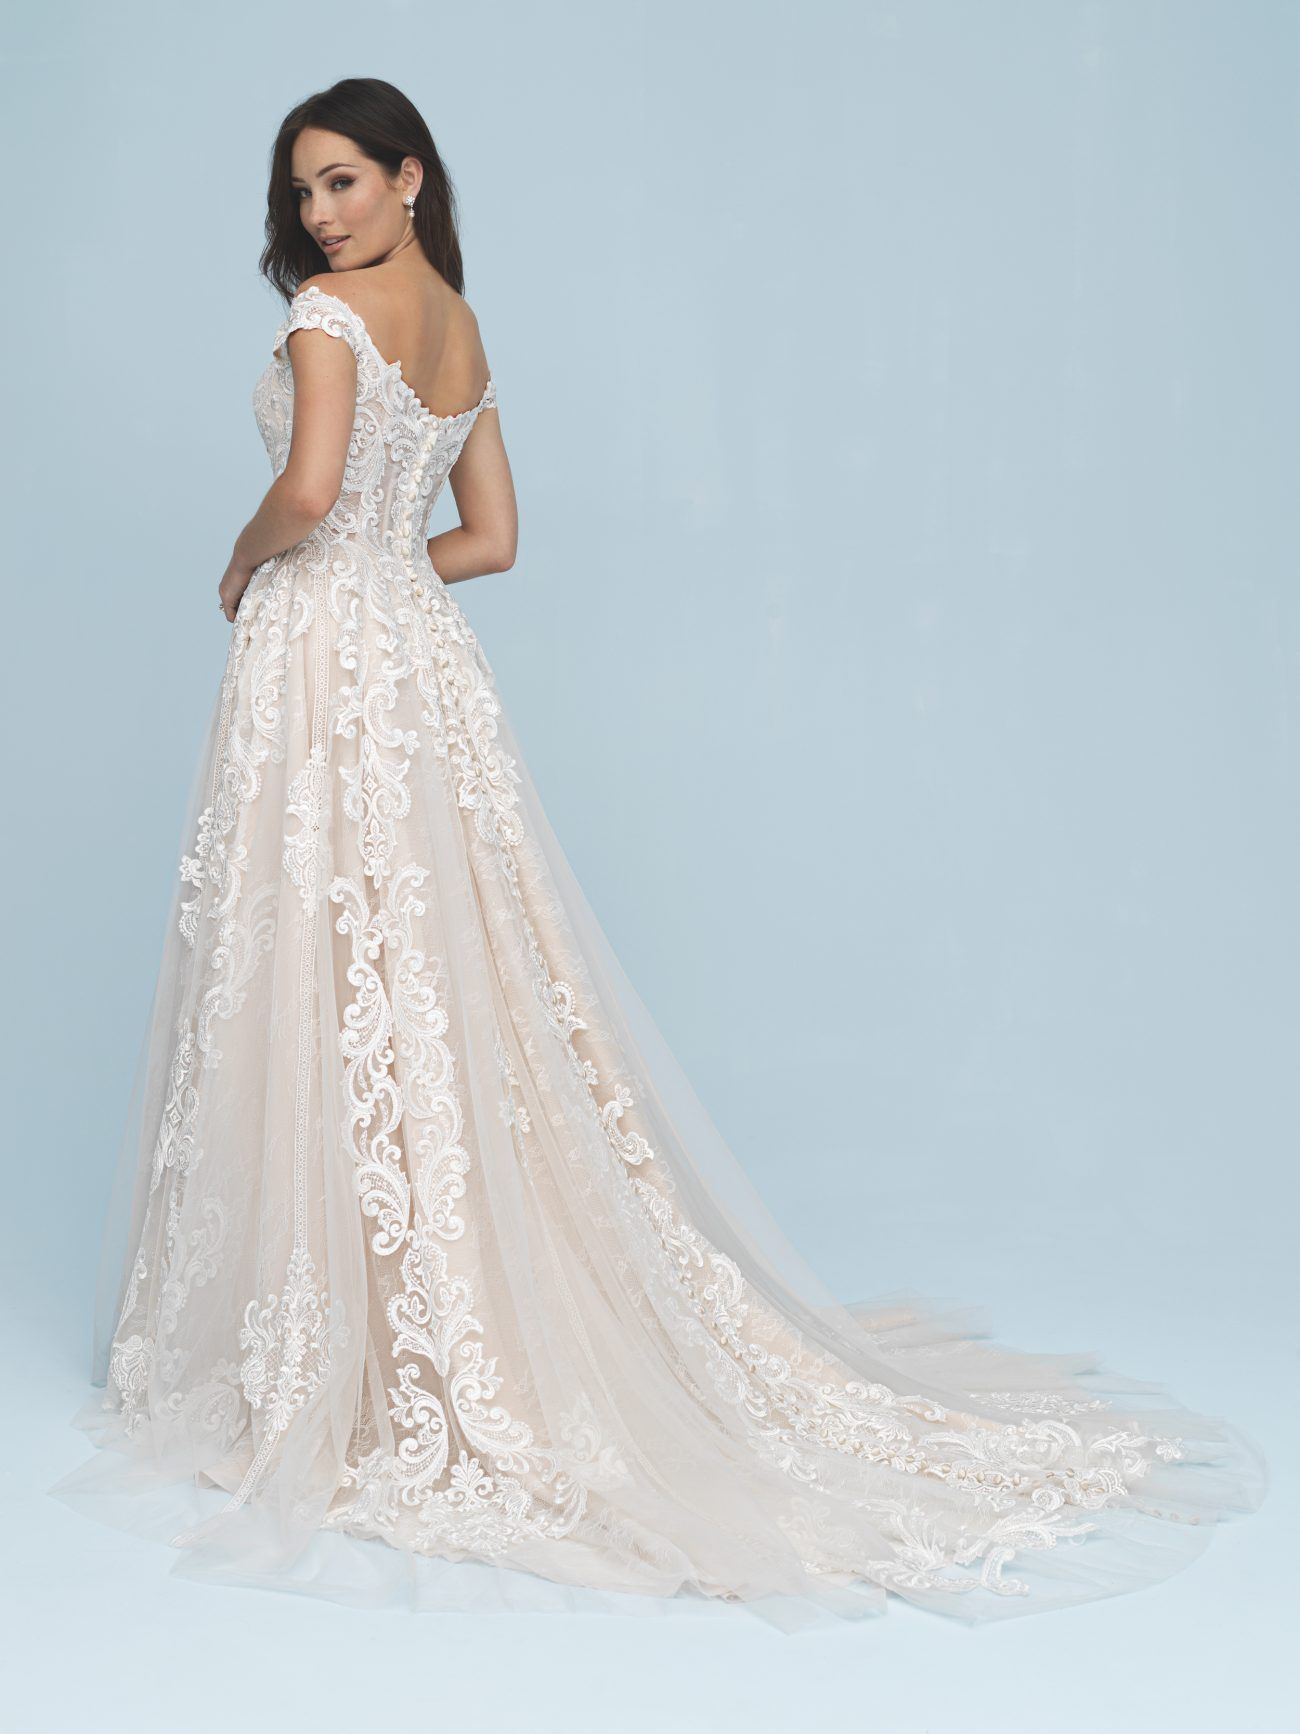 278e9492479 Introducing Allure Bridals Spring 2019 Collection - Once Wed